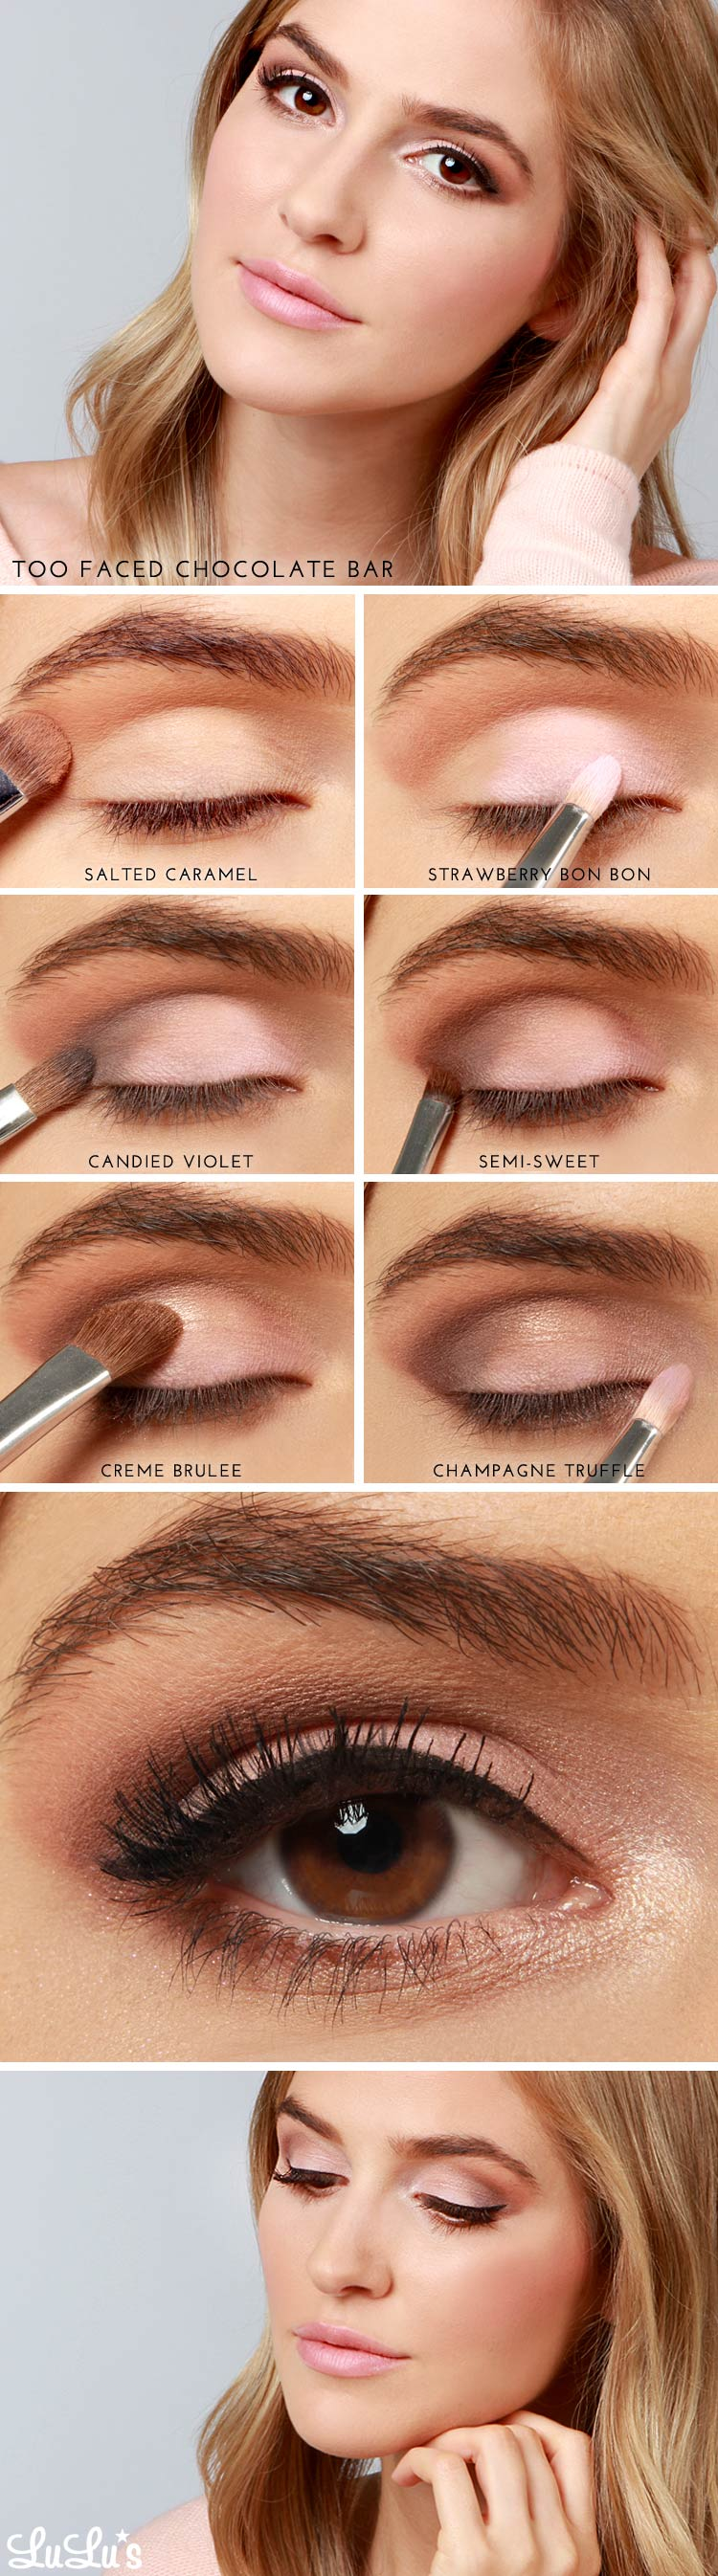 Lulus how to too faced chocolate bar eye shadow tutorial lulus lulus how to too faced chocolate bar eye shadow tutorial at lulus baditri Images